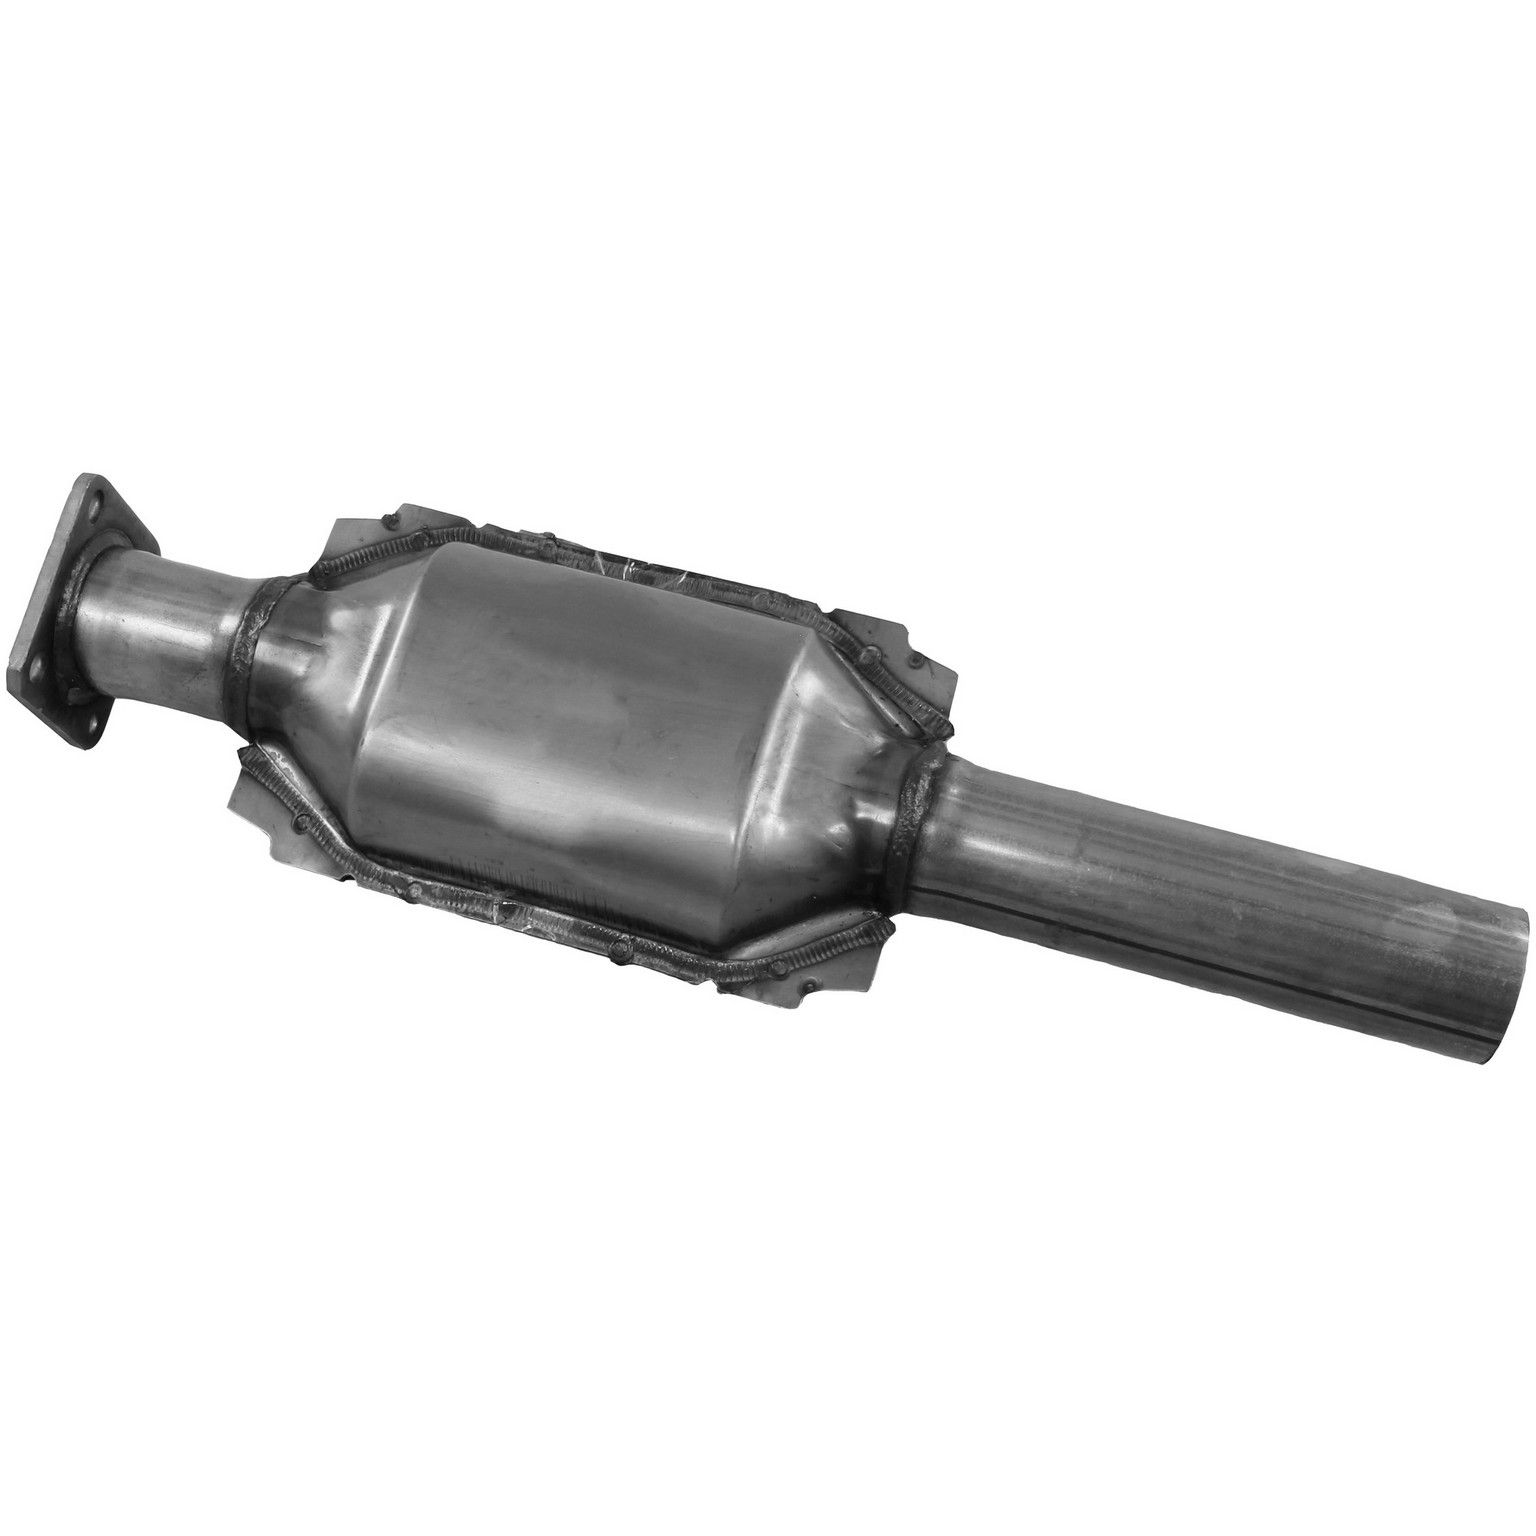 1986 Jeep Cherokee Catalytic Converter Na 4 Cyl 25l Walker 15634 Fits Fed Calif Emiss Models Not Legal For Sale In The State Of California: 1990 Jeep Cherokee Catalytic Converter At Woreks.co